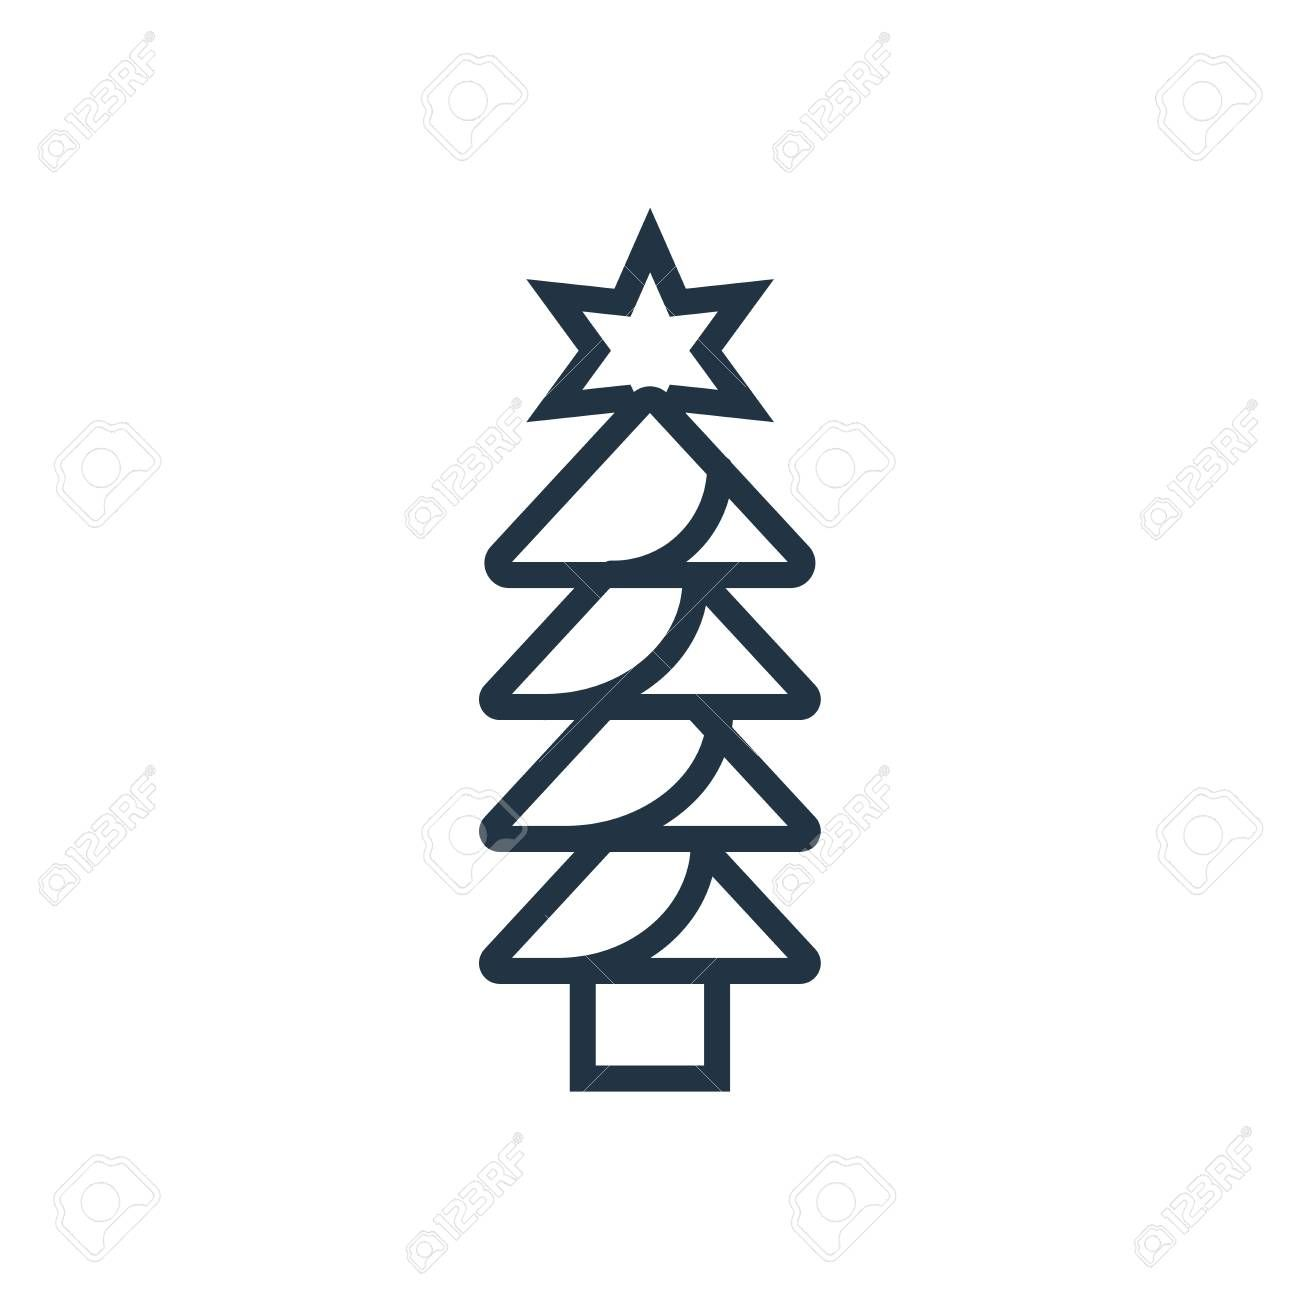 Christmas Tree Icon Vector Isolated On White Background Christmas Tree Transparent Sign Aff Icon Vector Christmas Tree Isolated Disenos De Unas